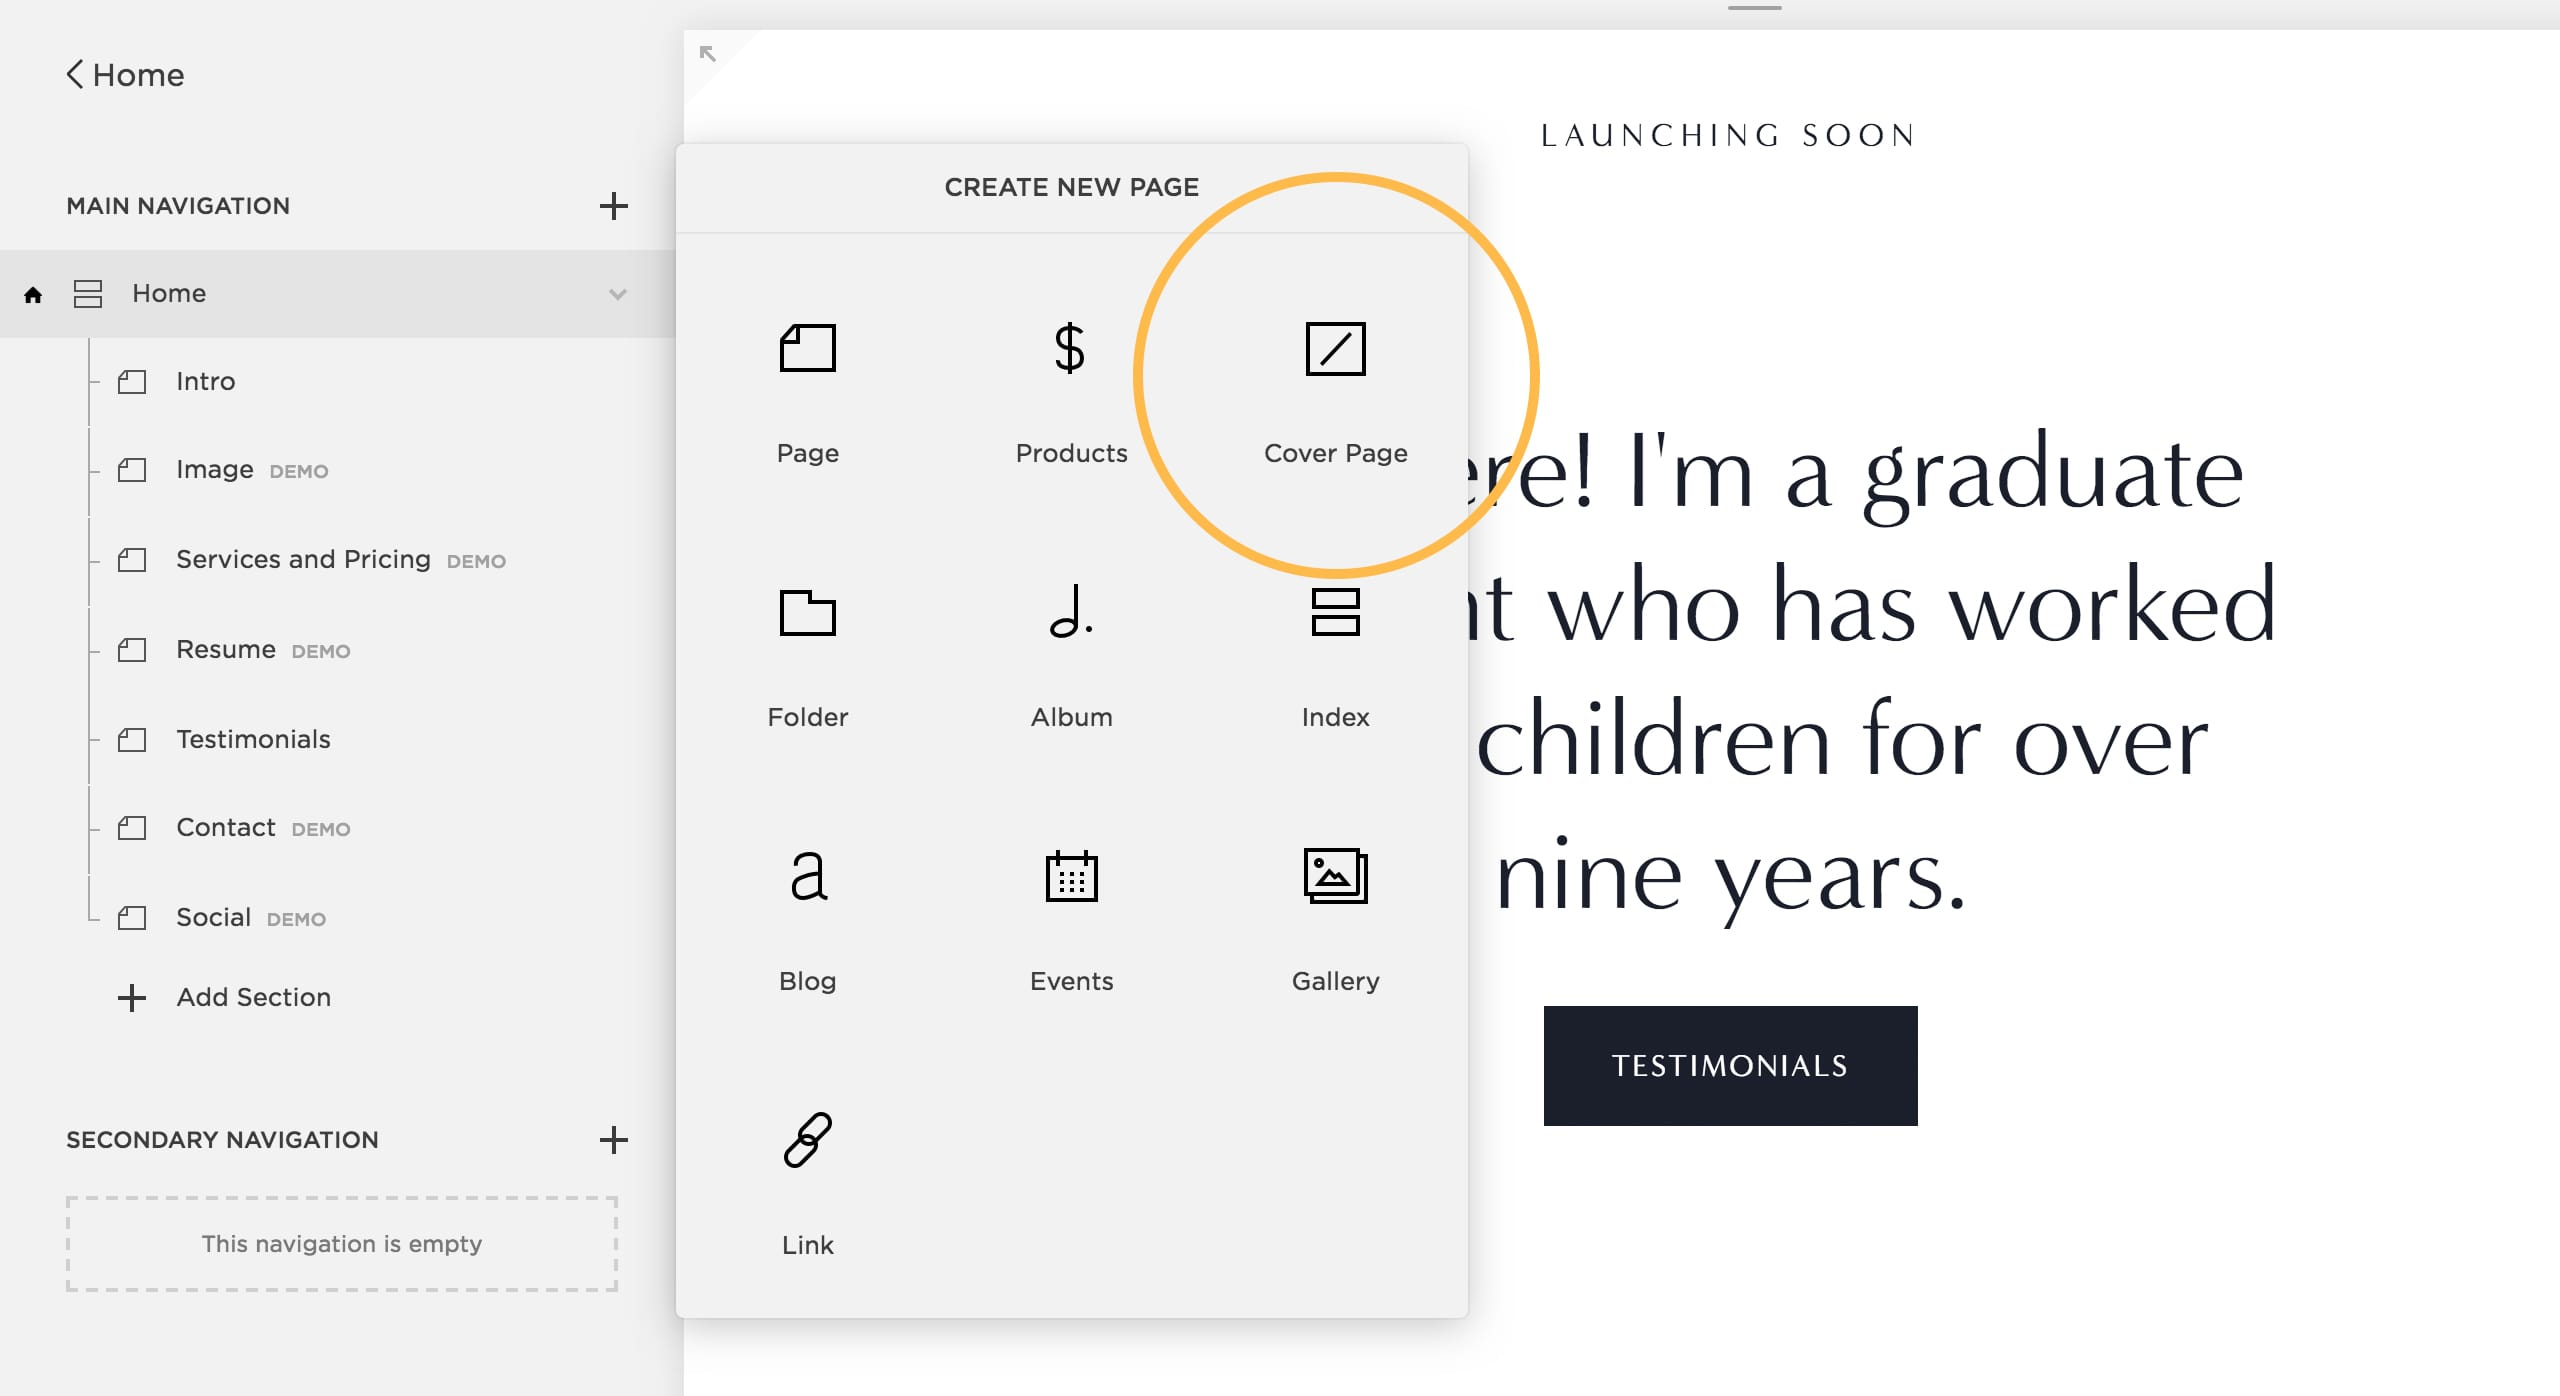 Adding a Cover Page from the Squarespace Interface